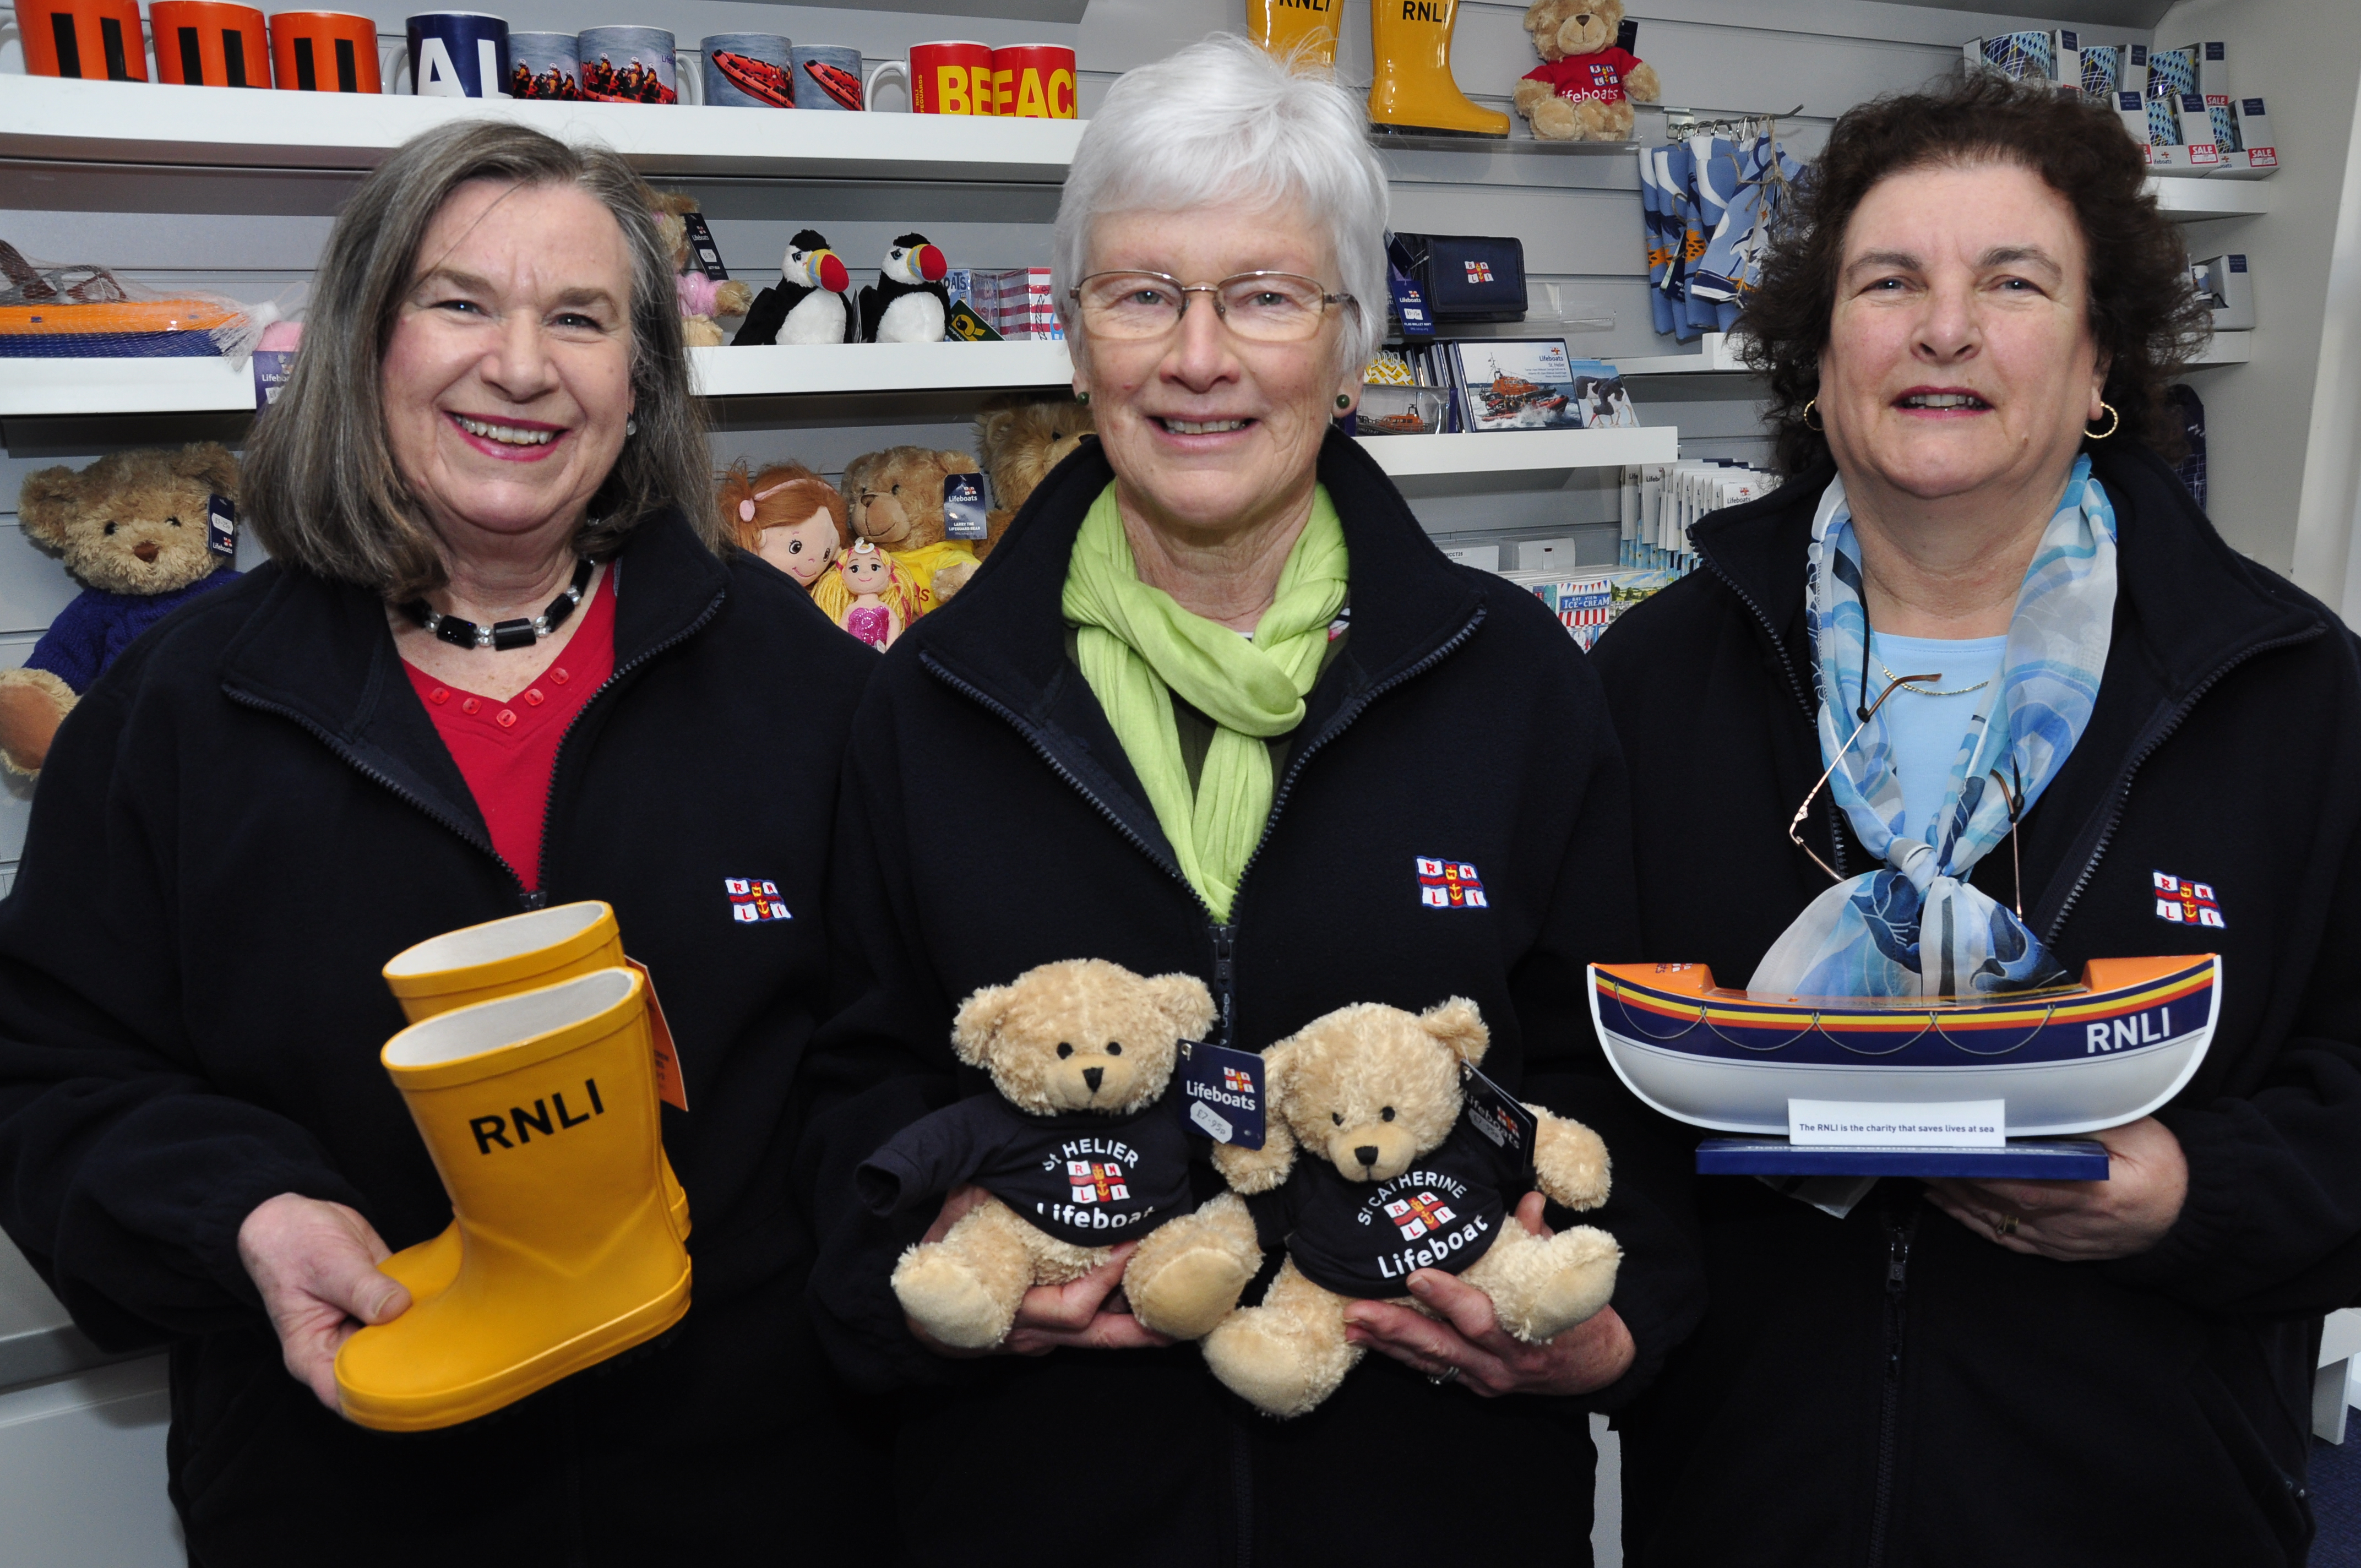 Volunteers from the Jersey Lifeboat Guild prepare for the opening. From left to right: Josephine Spary, Chairman of the Jersey Lifeboat Guild and shop volunteer, Mary Mimmack, shop manager and Michelene Vezier, deputy shop manager.